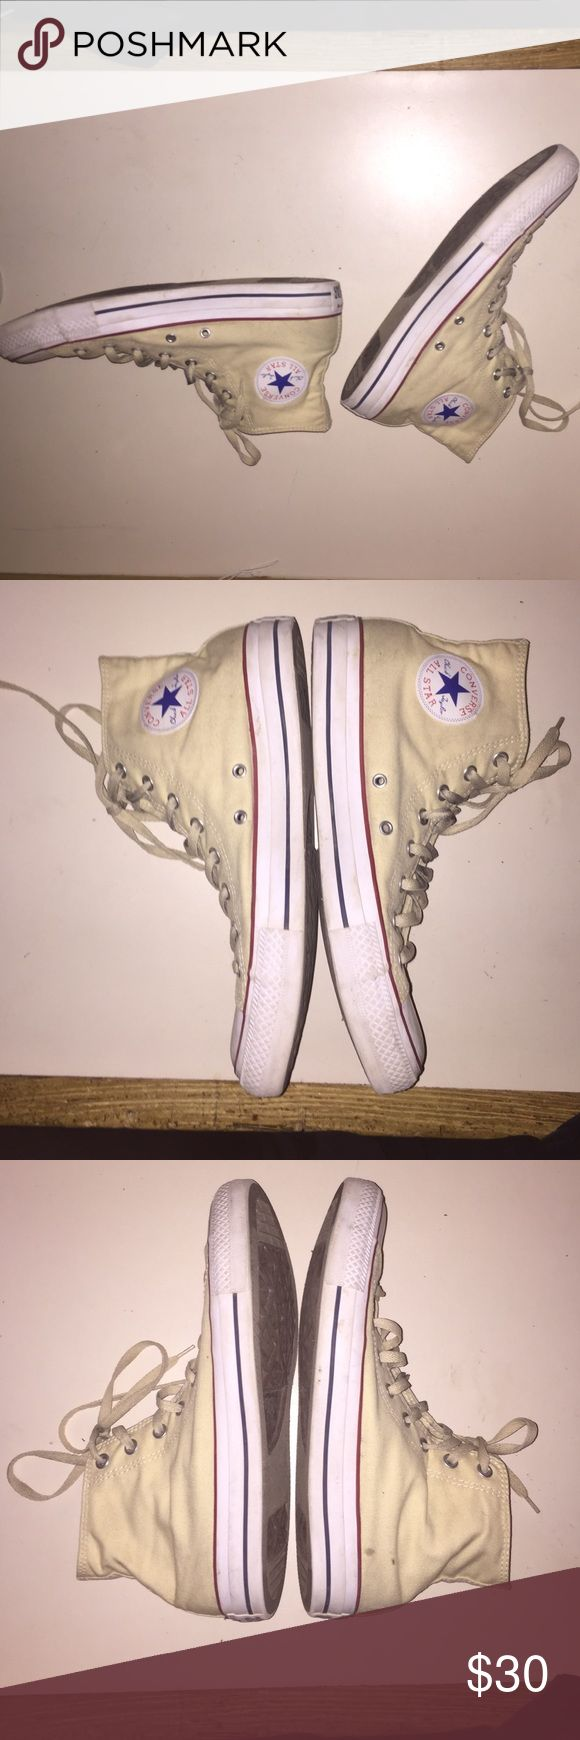 Cream converse high tops size 11 High top cream converse, rarely used Converse Shoes Sneakers